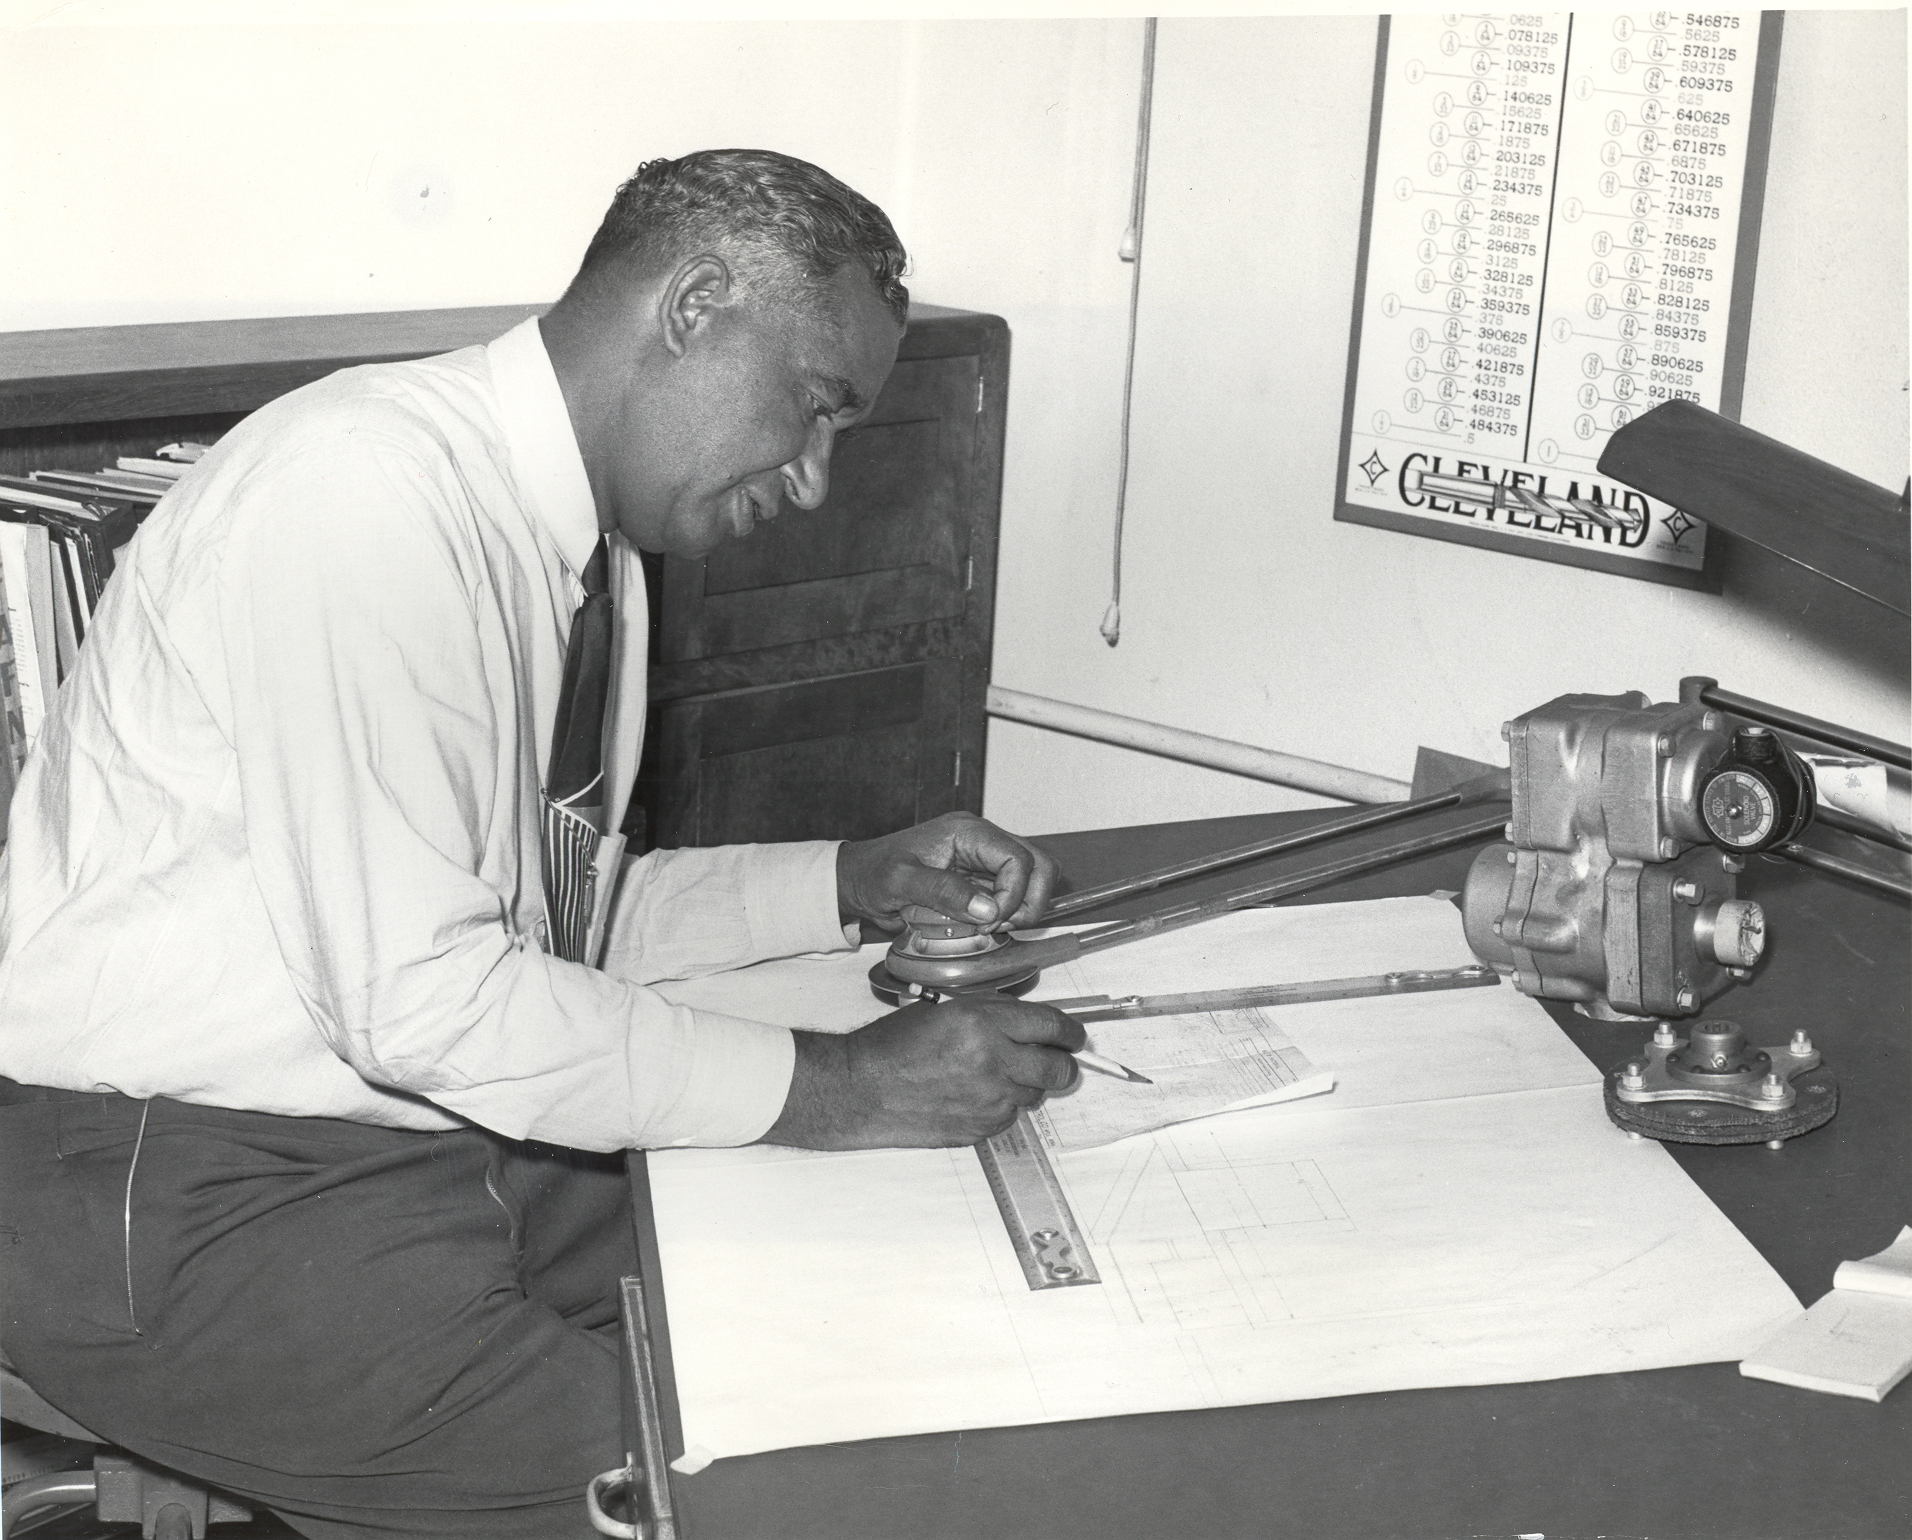 Frederick McKinley Jones at his drafting desk. Jones was a prolific inventor who invented a cooling system used in Army trucks in World War II to transport food, medicine and blood.